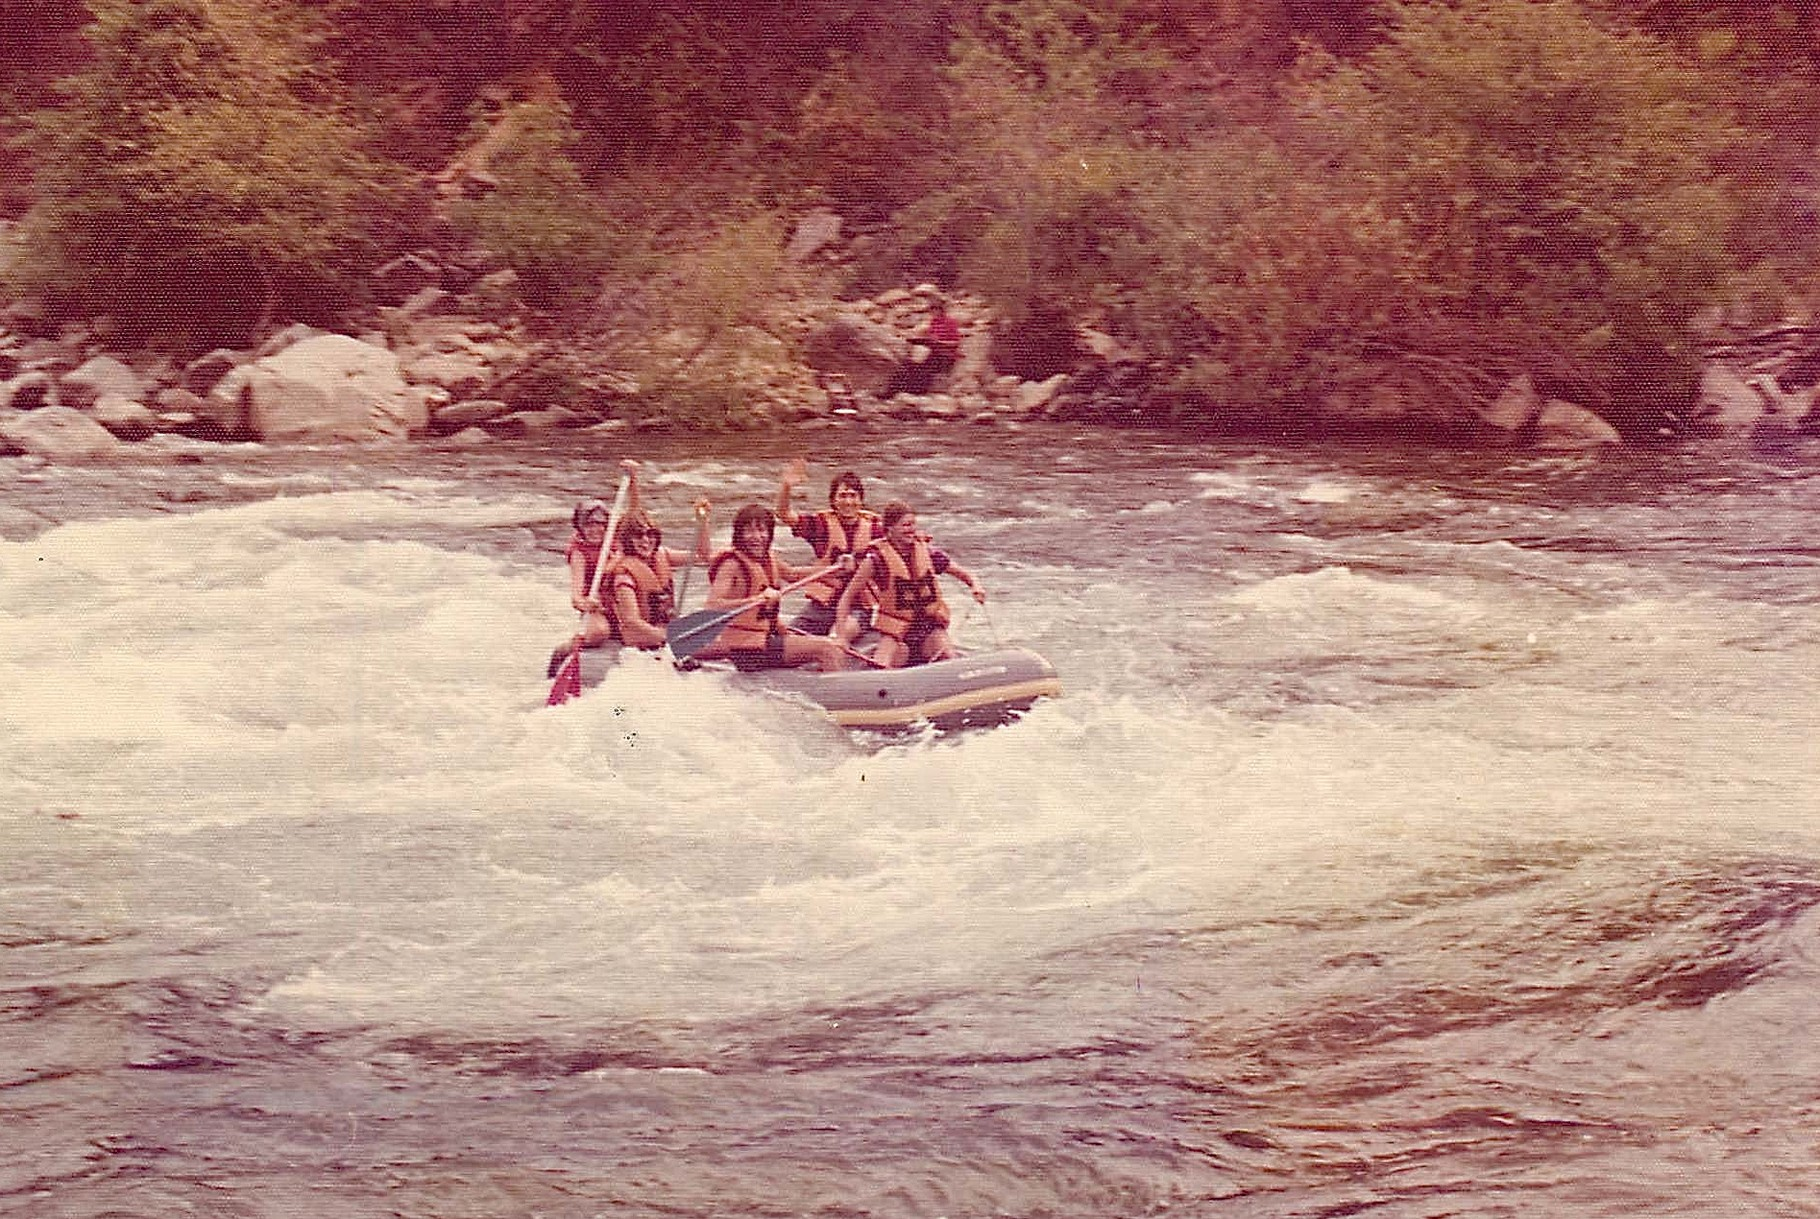 Debby Doyle, Lorraine Gudas, Reg Kelly, John Wagner, & Amy rafting the south fork, American River, S-turn 1976